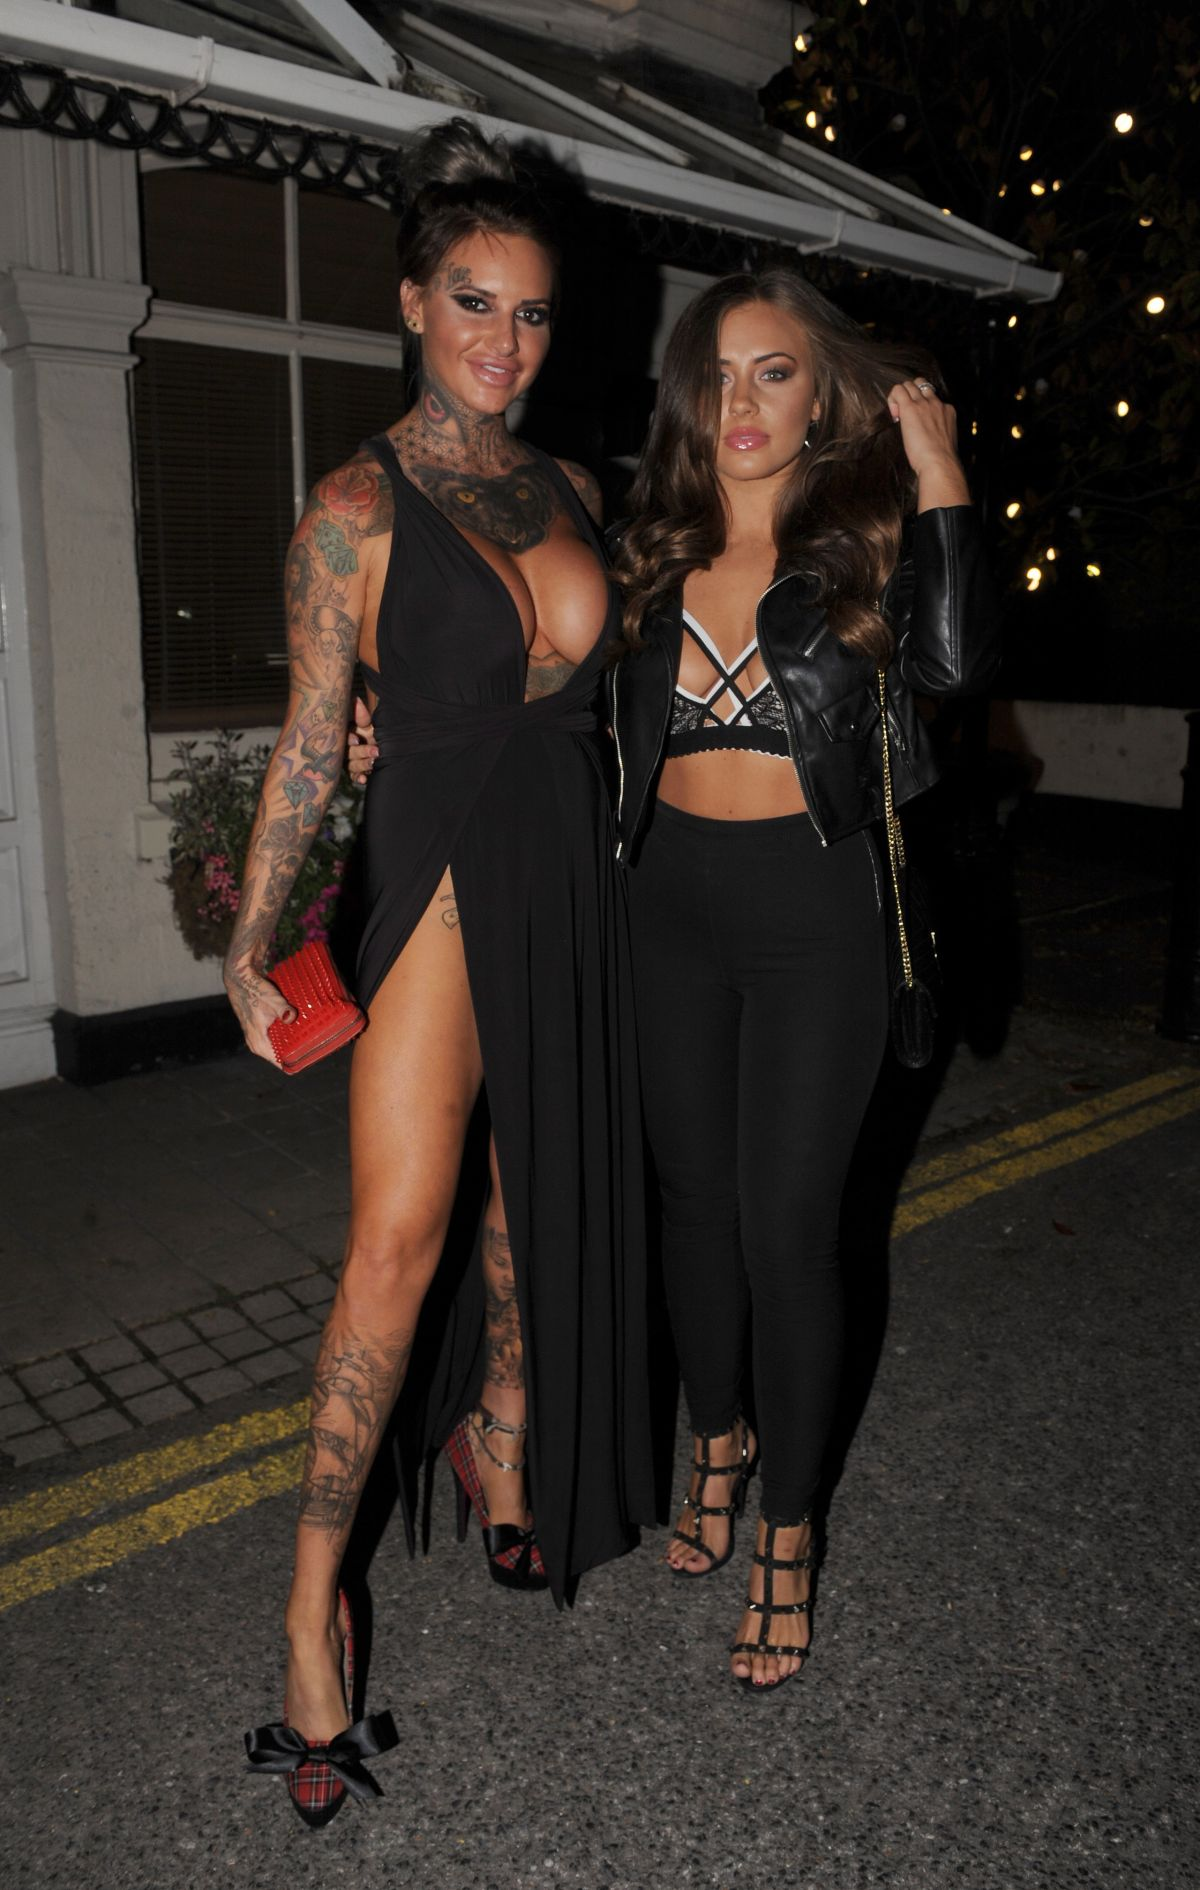 JEMMA LUCY and ASHLEIGH DEFTY at Viper Room in London 08/14/2016